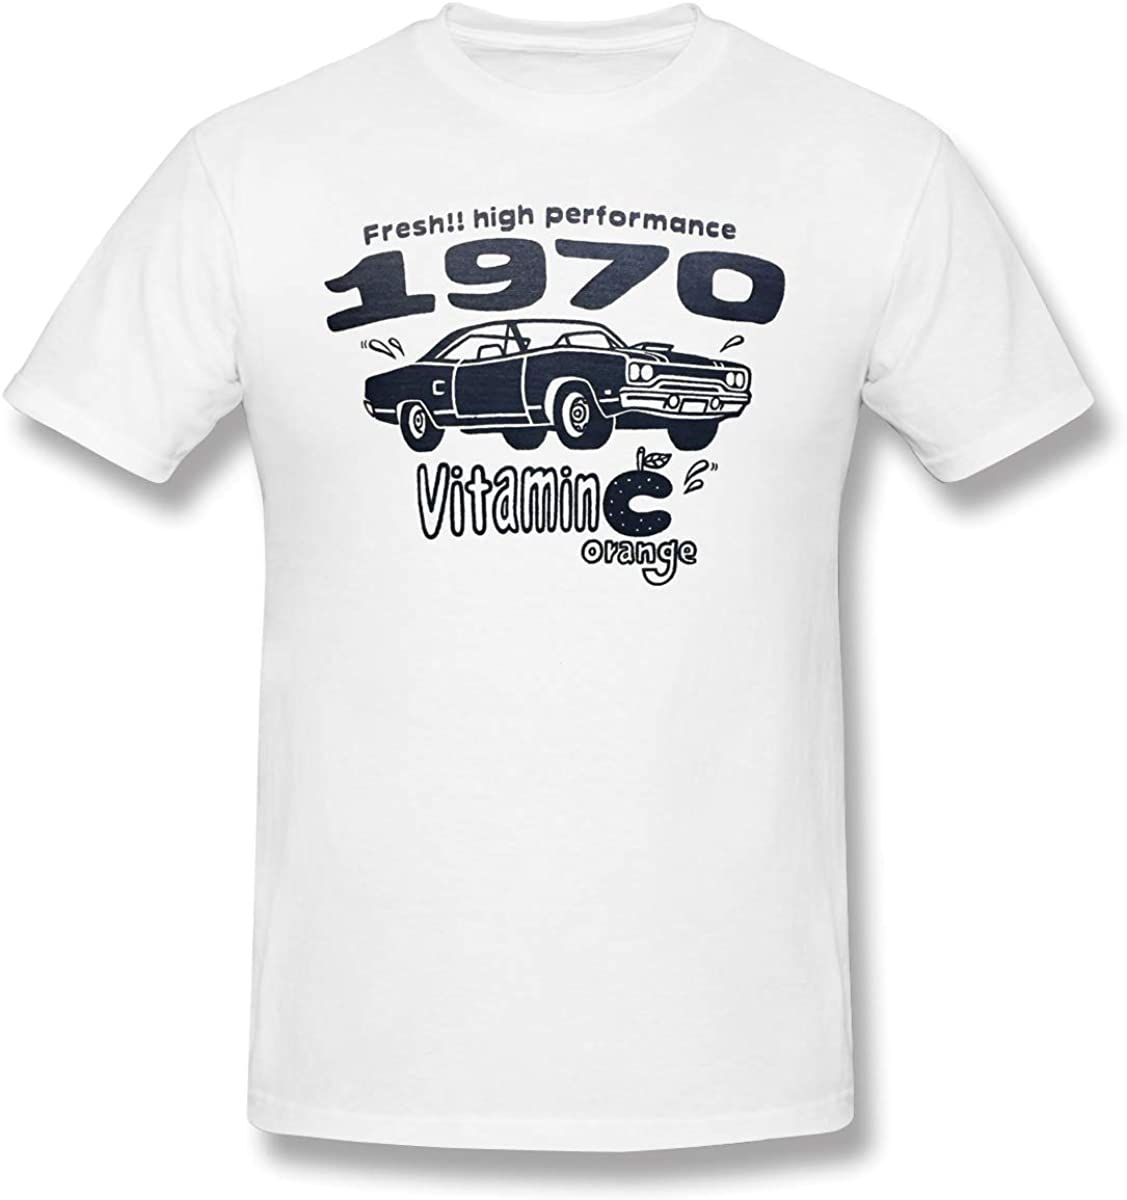 Hotrod C10 Built Not Bought Vintage 1970s Truck Tshirt